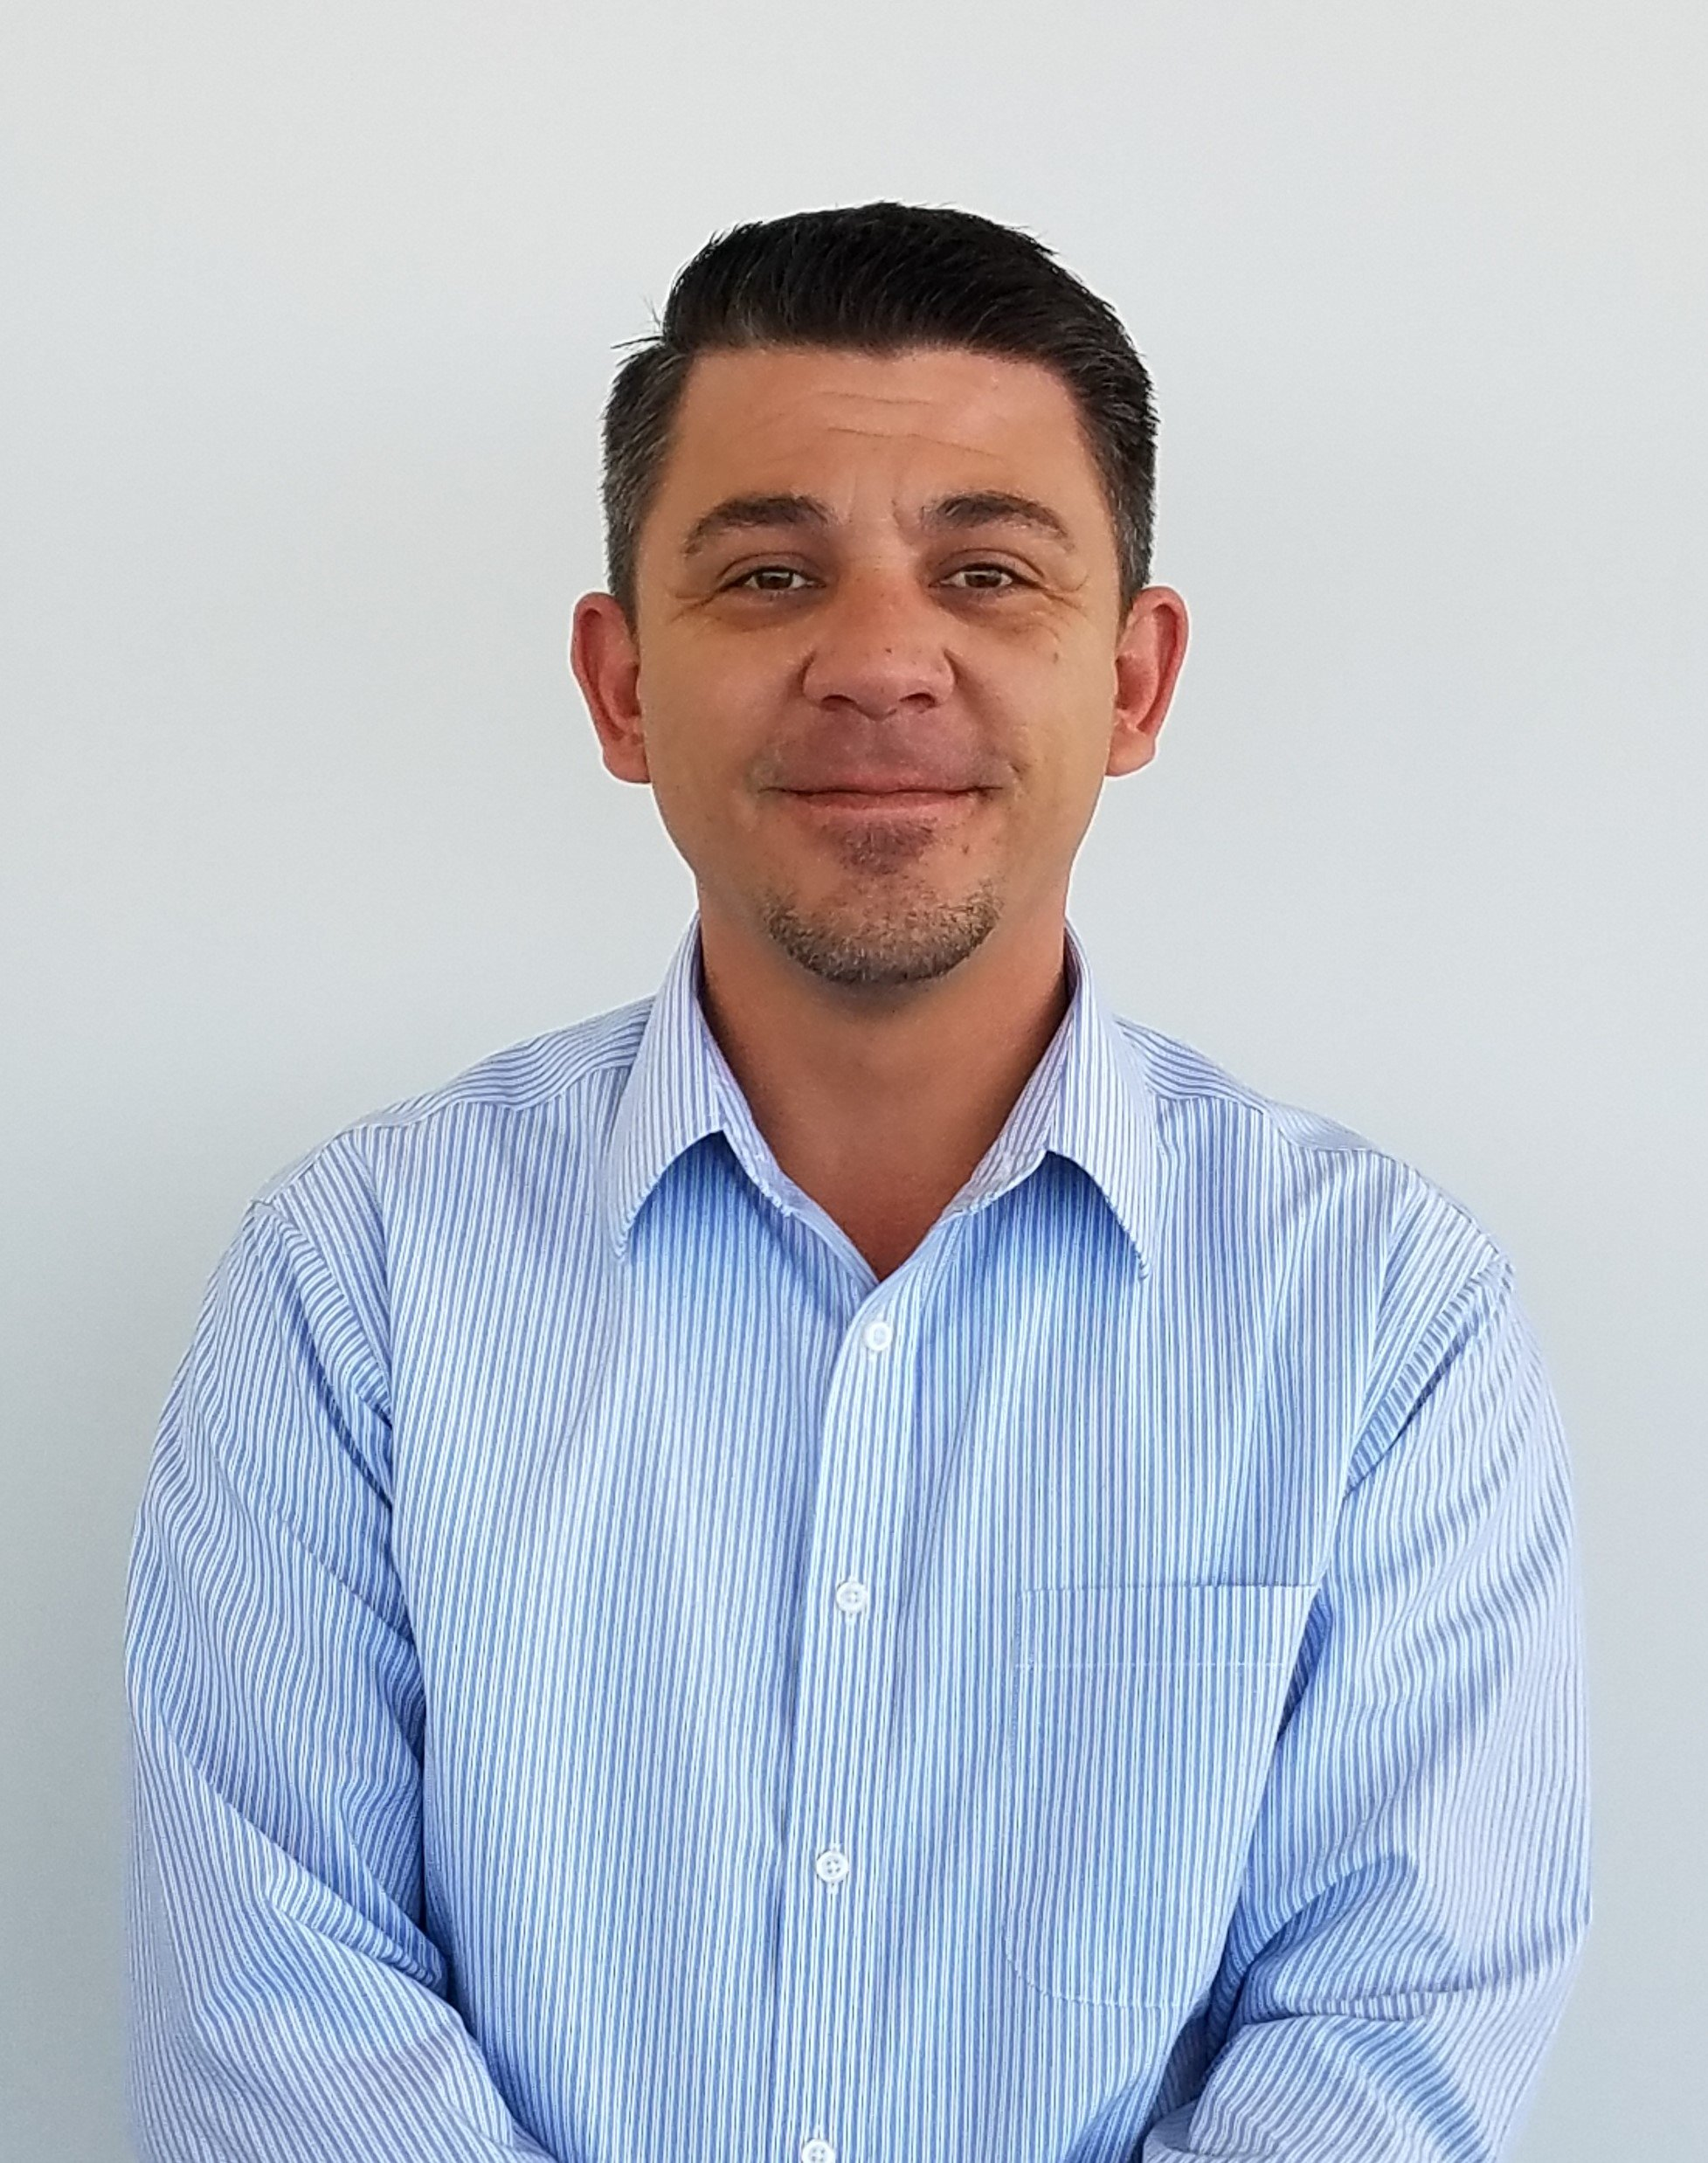 John Tripp - Sales Manager